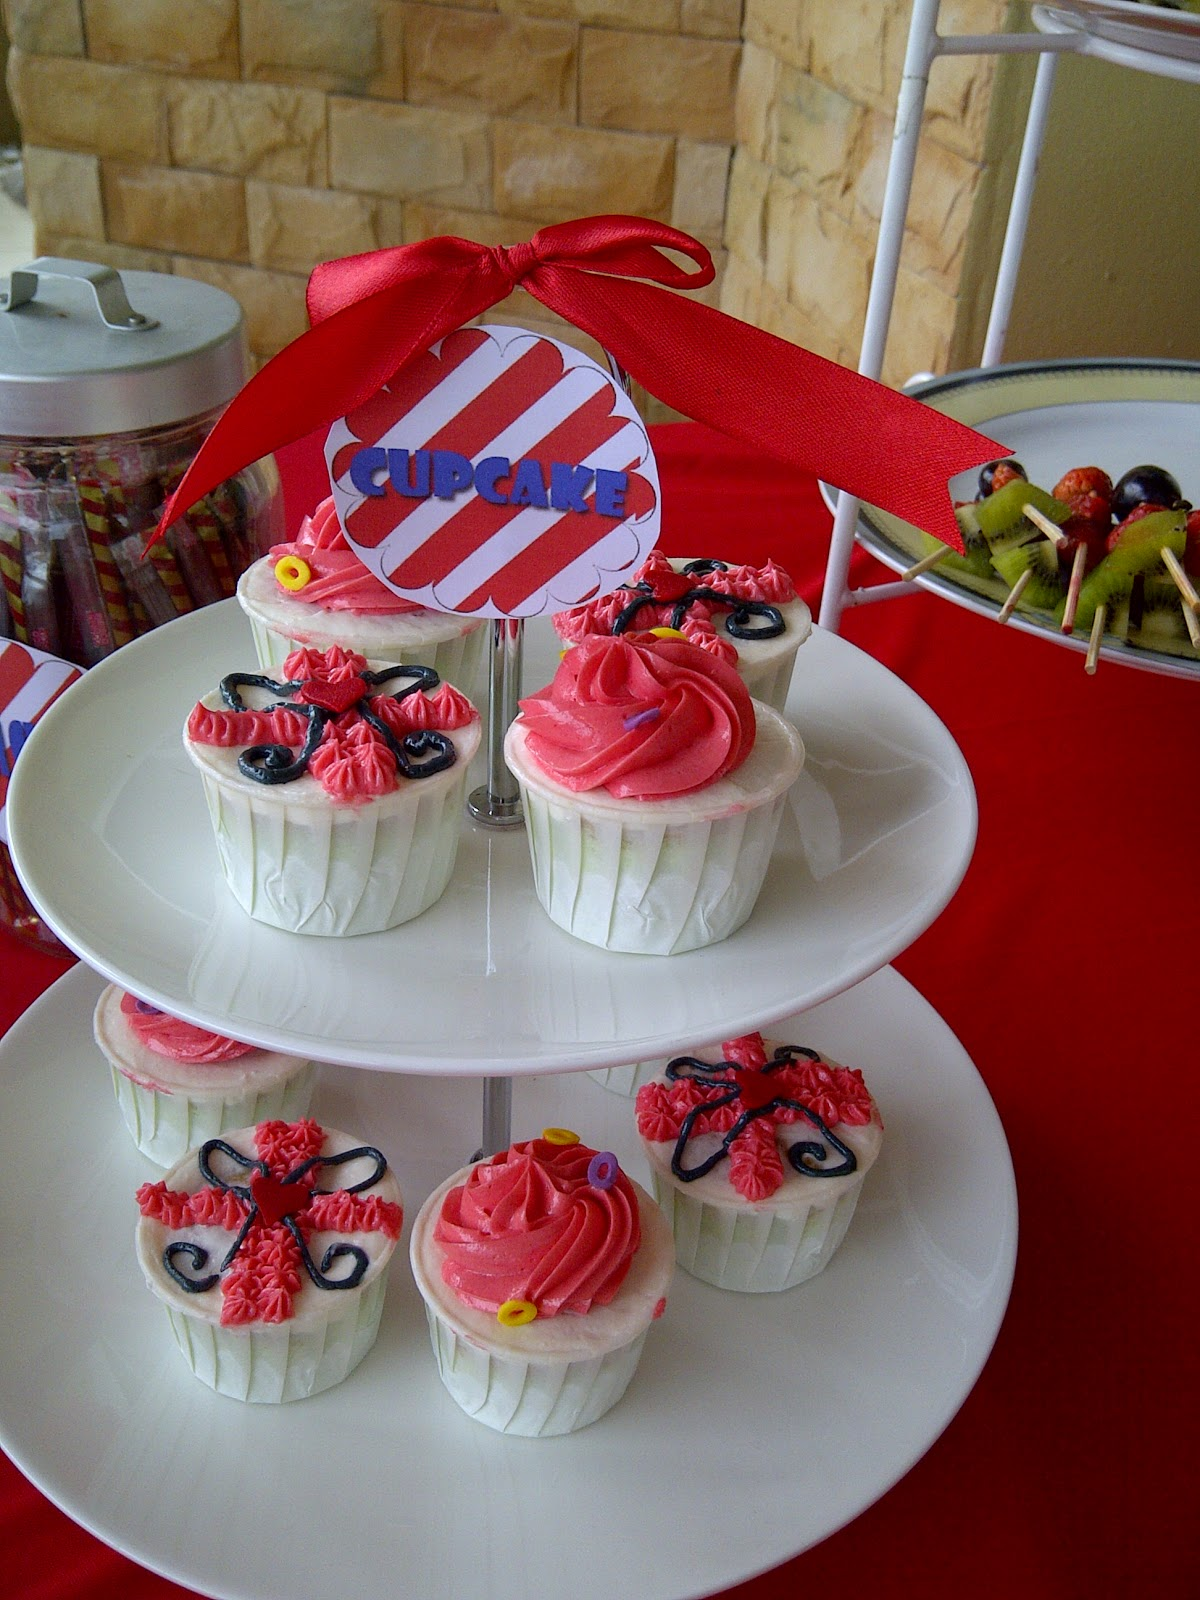 Birthday Cake Icing Decorations Image Inspiration of Cake and